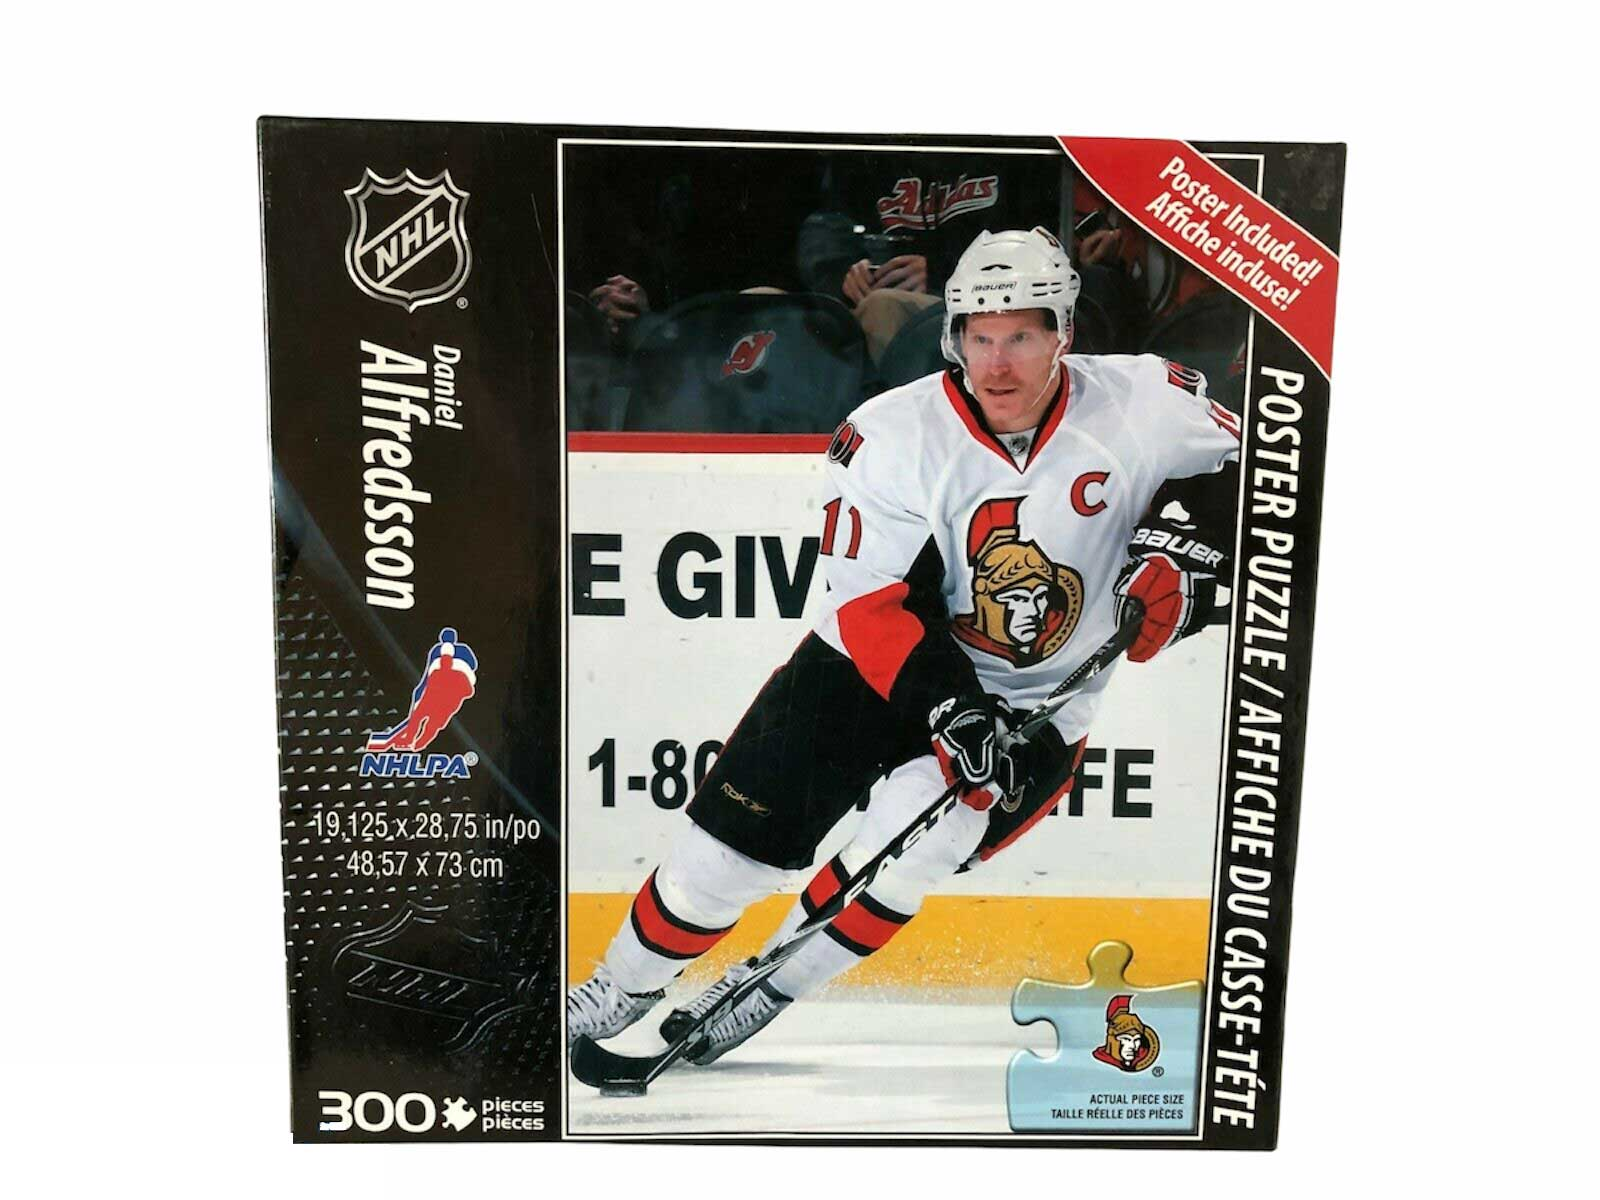 Collectible NHL 2009 Puzzle Daniel Alfredsson (250 pcs) Poster Included